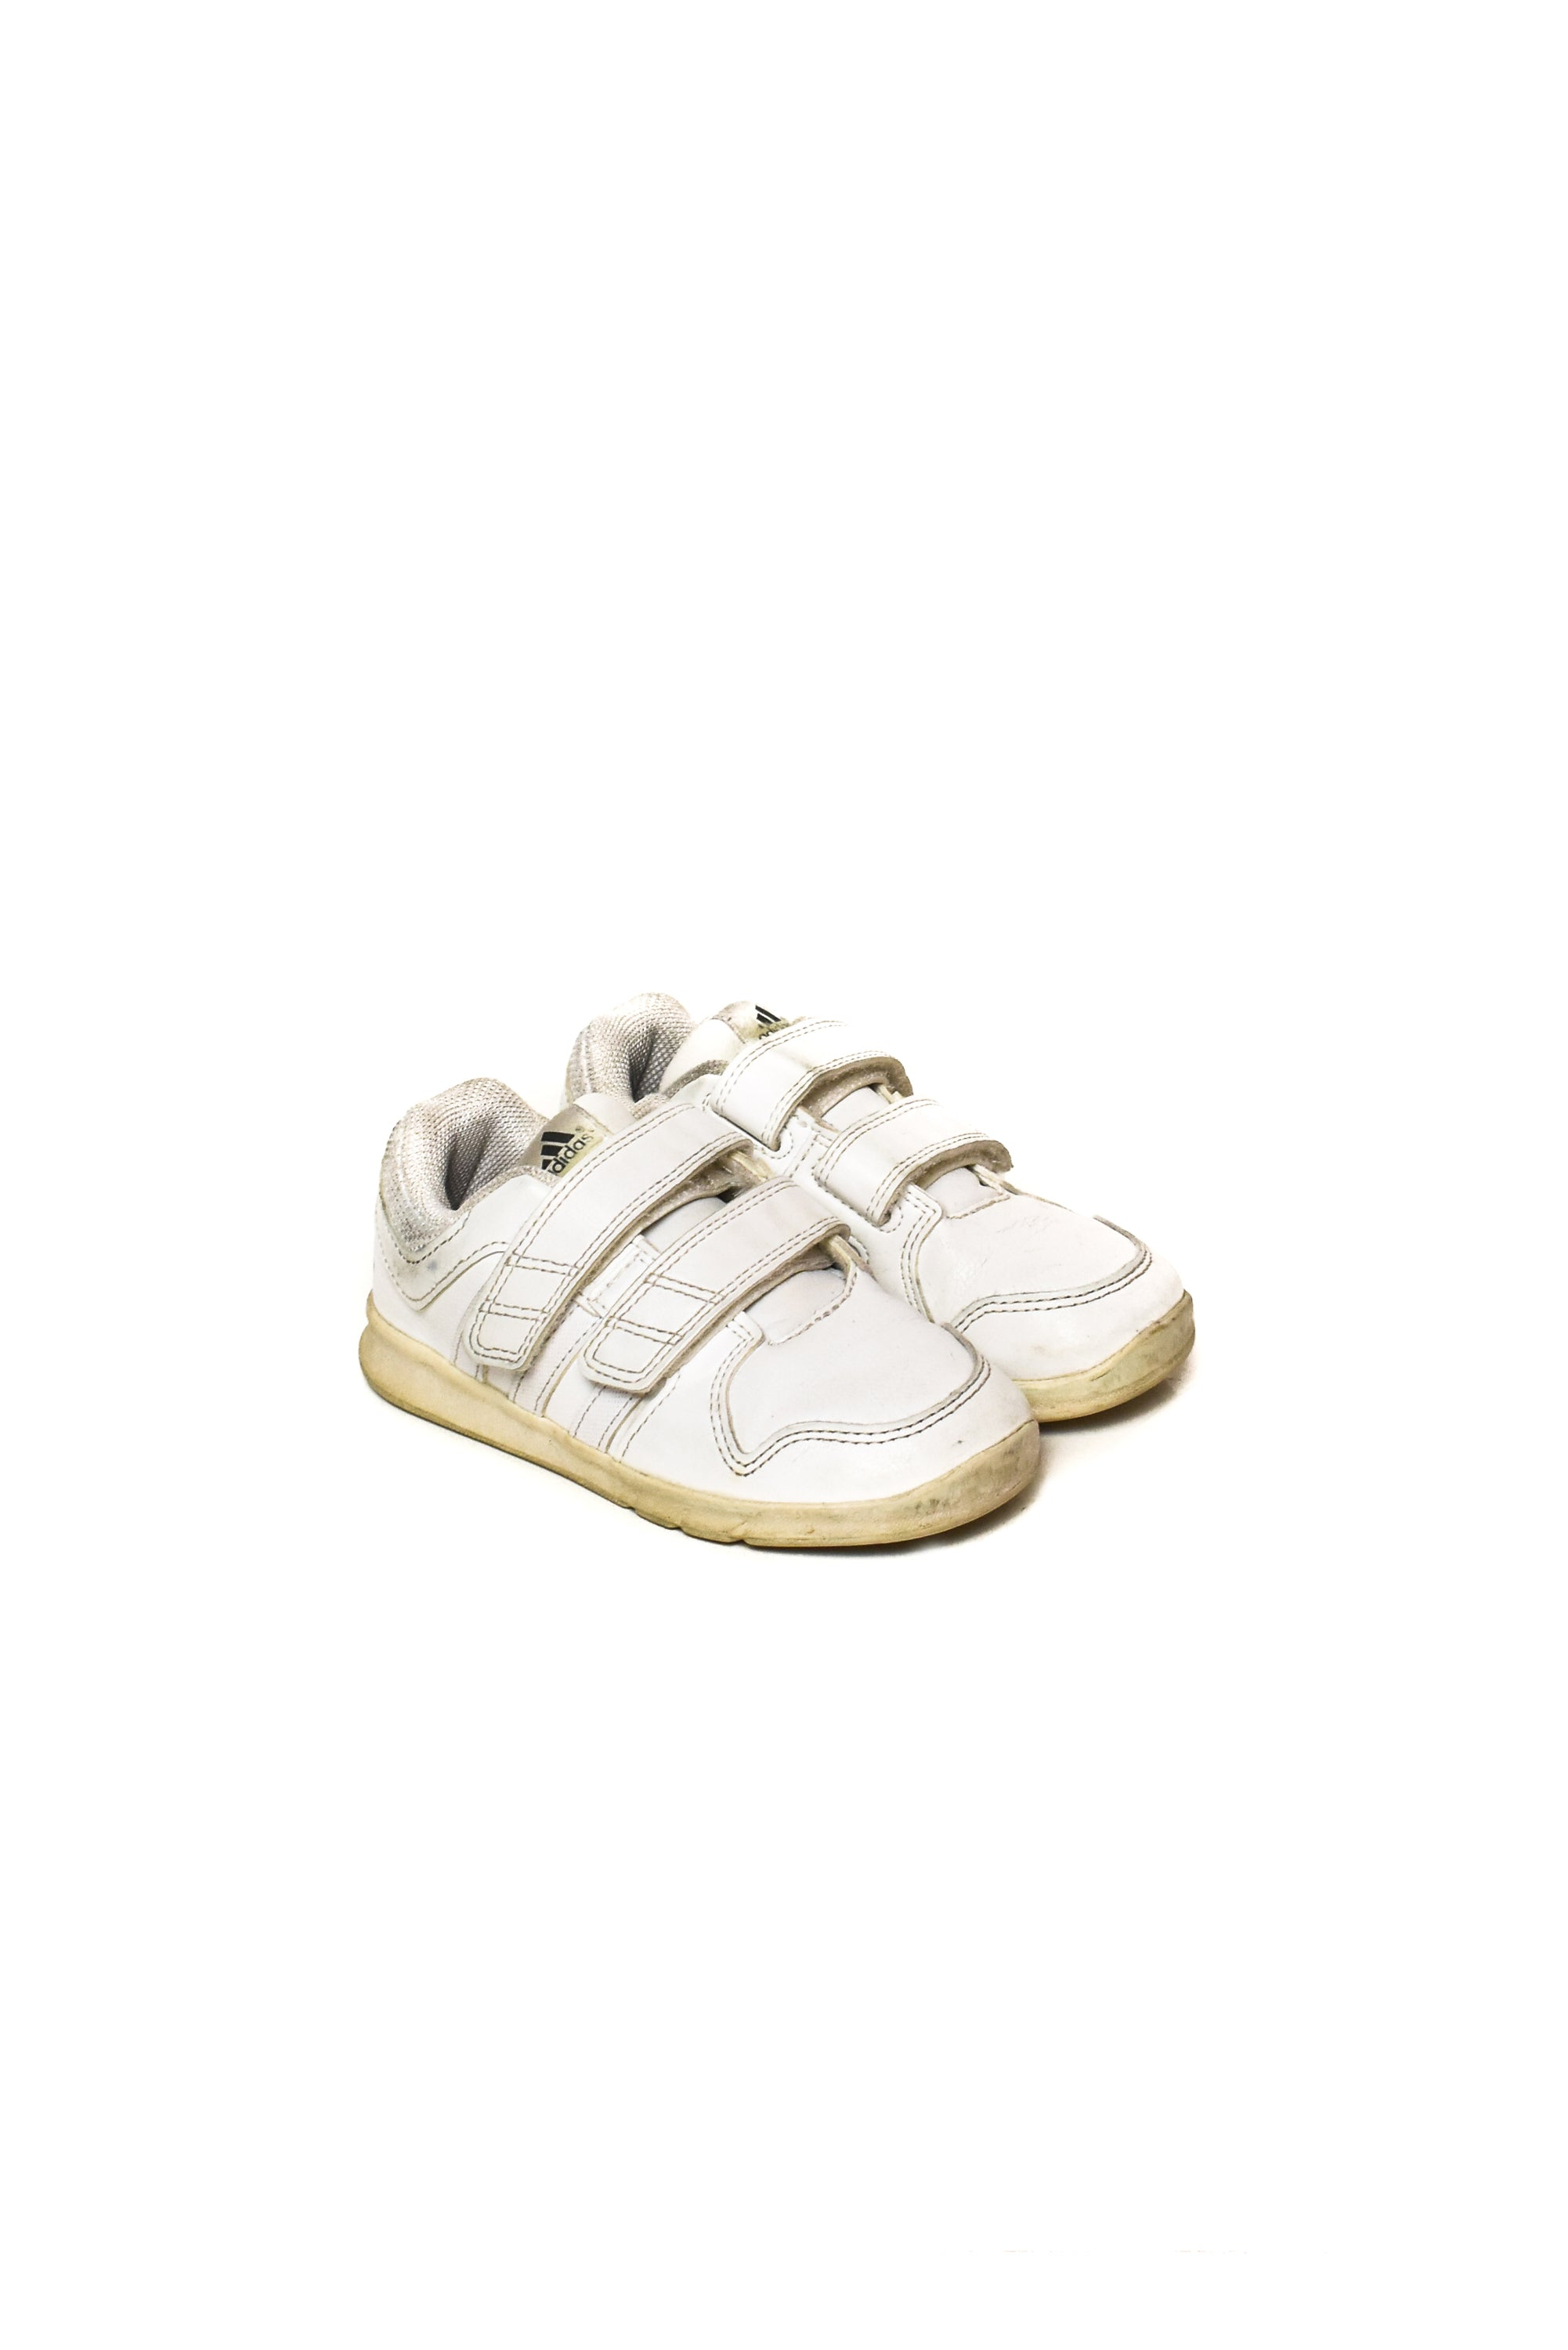 10007759 Adidas Kids~ Shoes 4T (EU 26.5) at Retykle